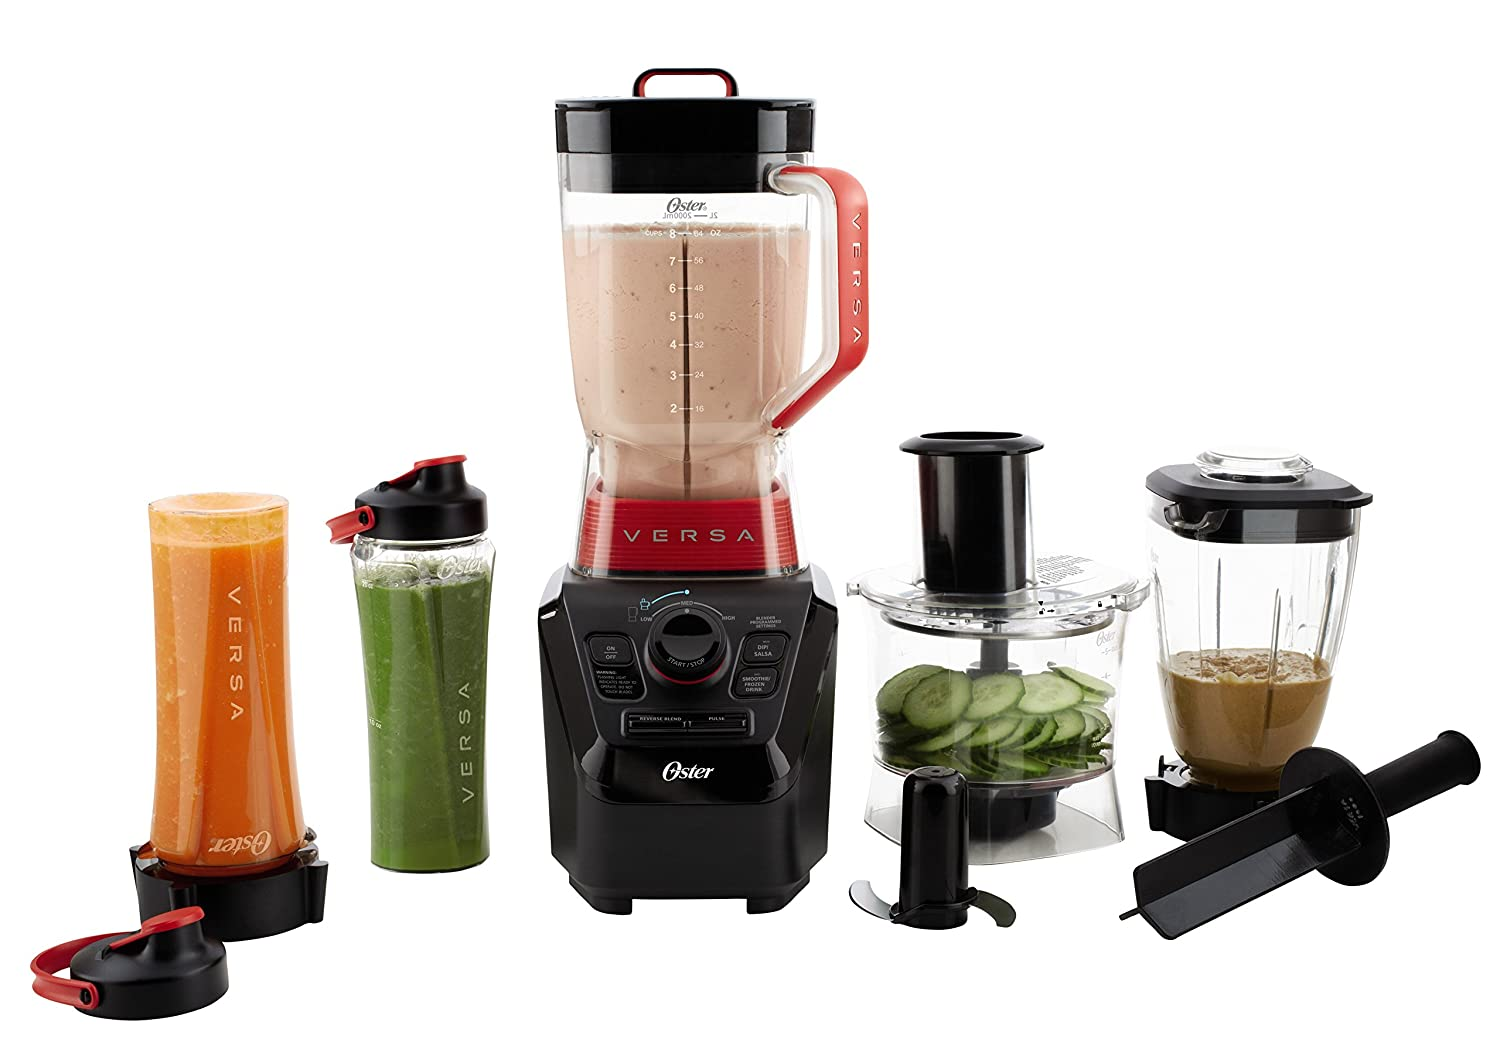 Oster Versa ProBLSTVB-104-000Series Blender with Food Processor Attachment, Blend-N-Go Smoothie Cups & 4-cup Mini Jar